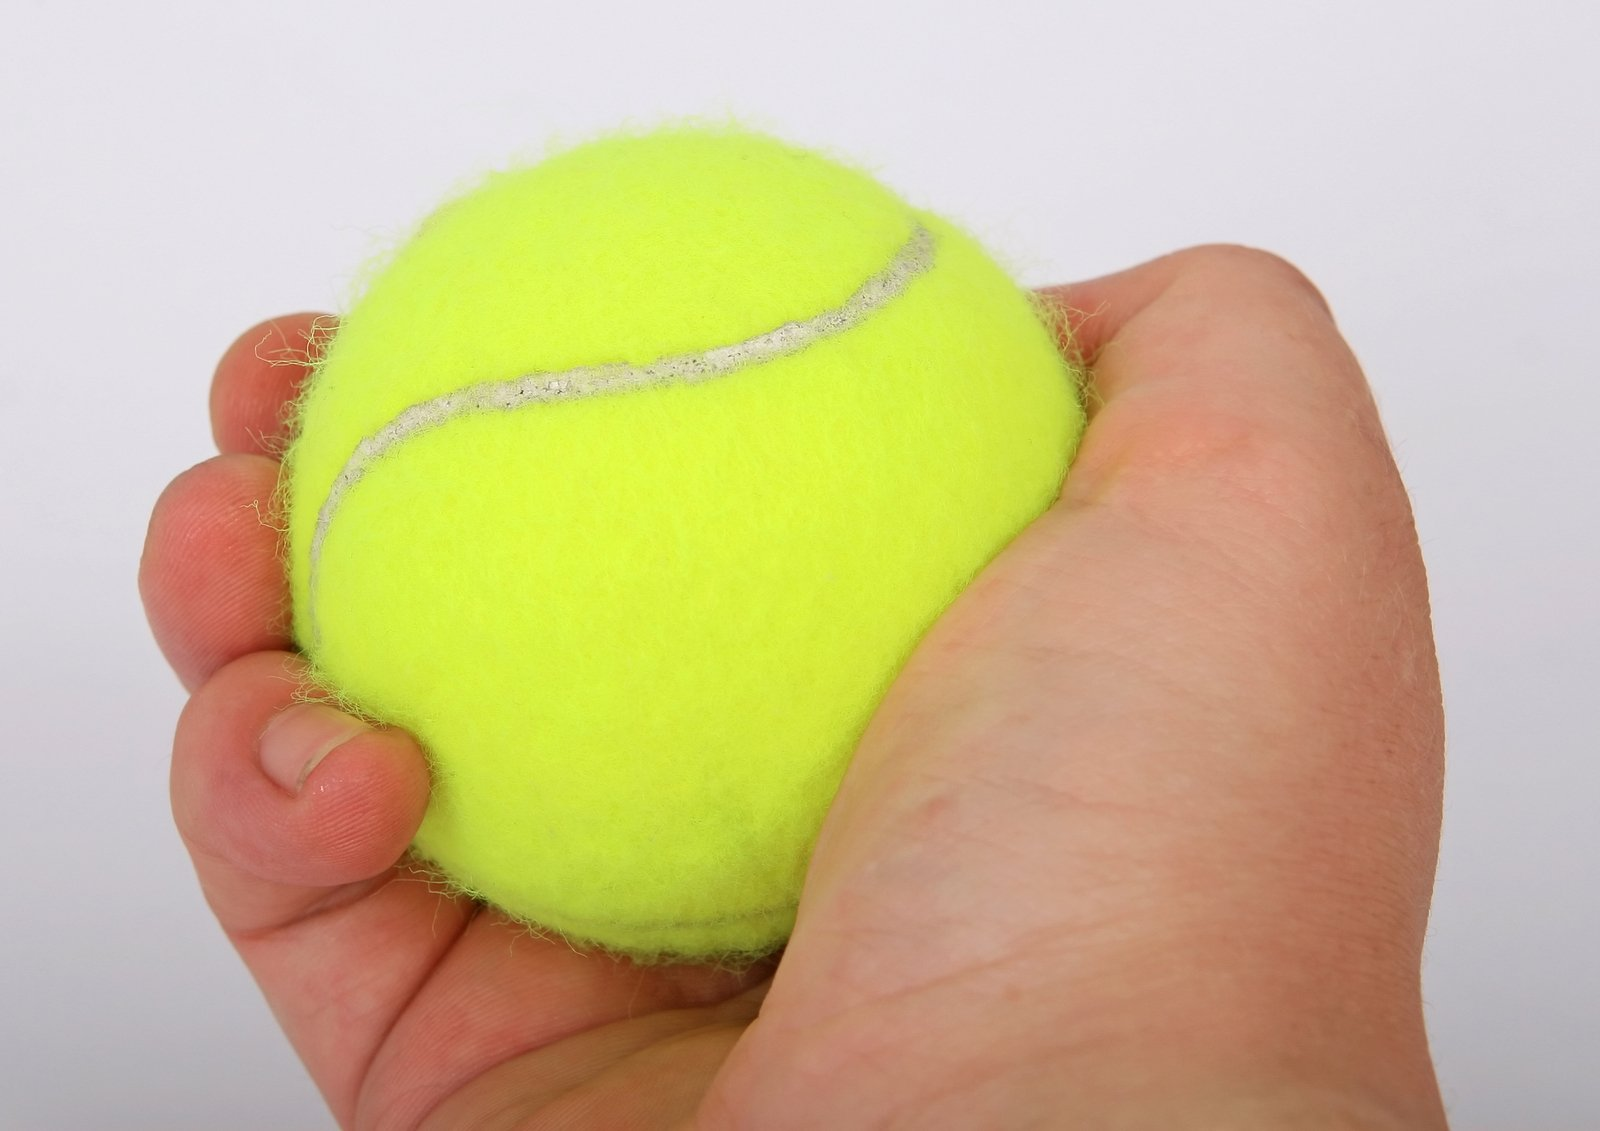 Tennis Ball and a hand